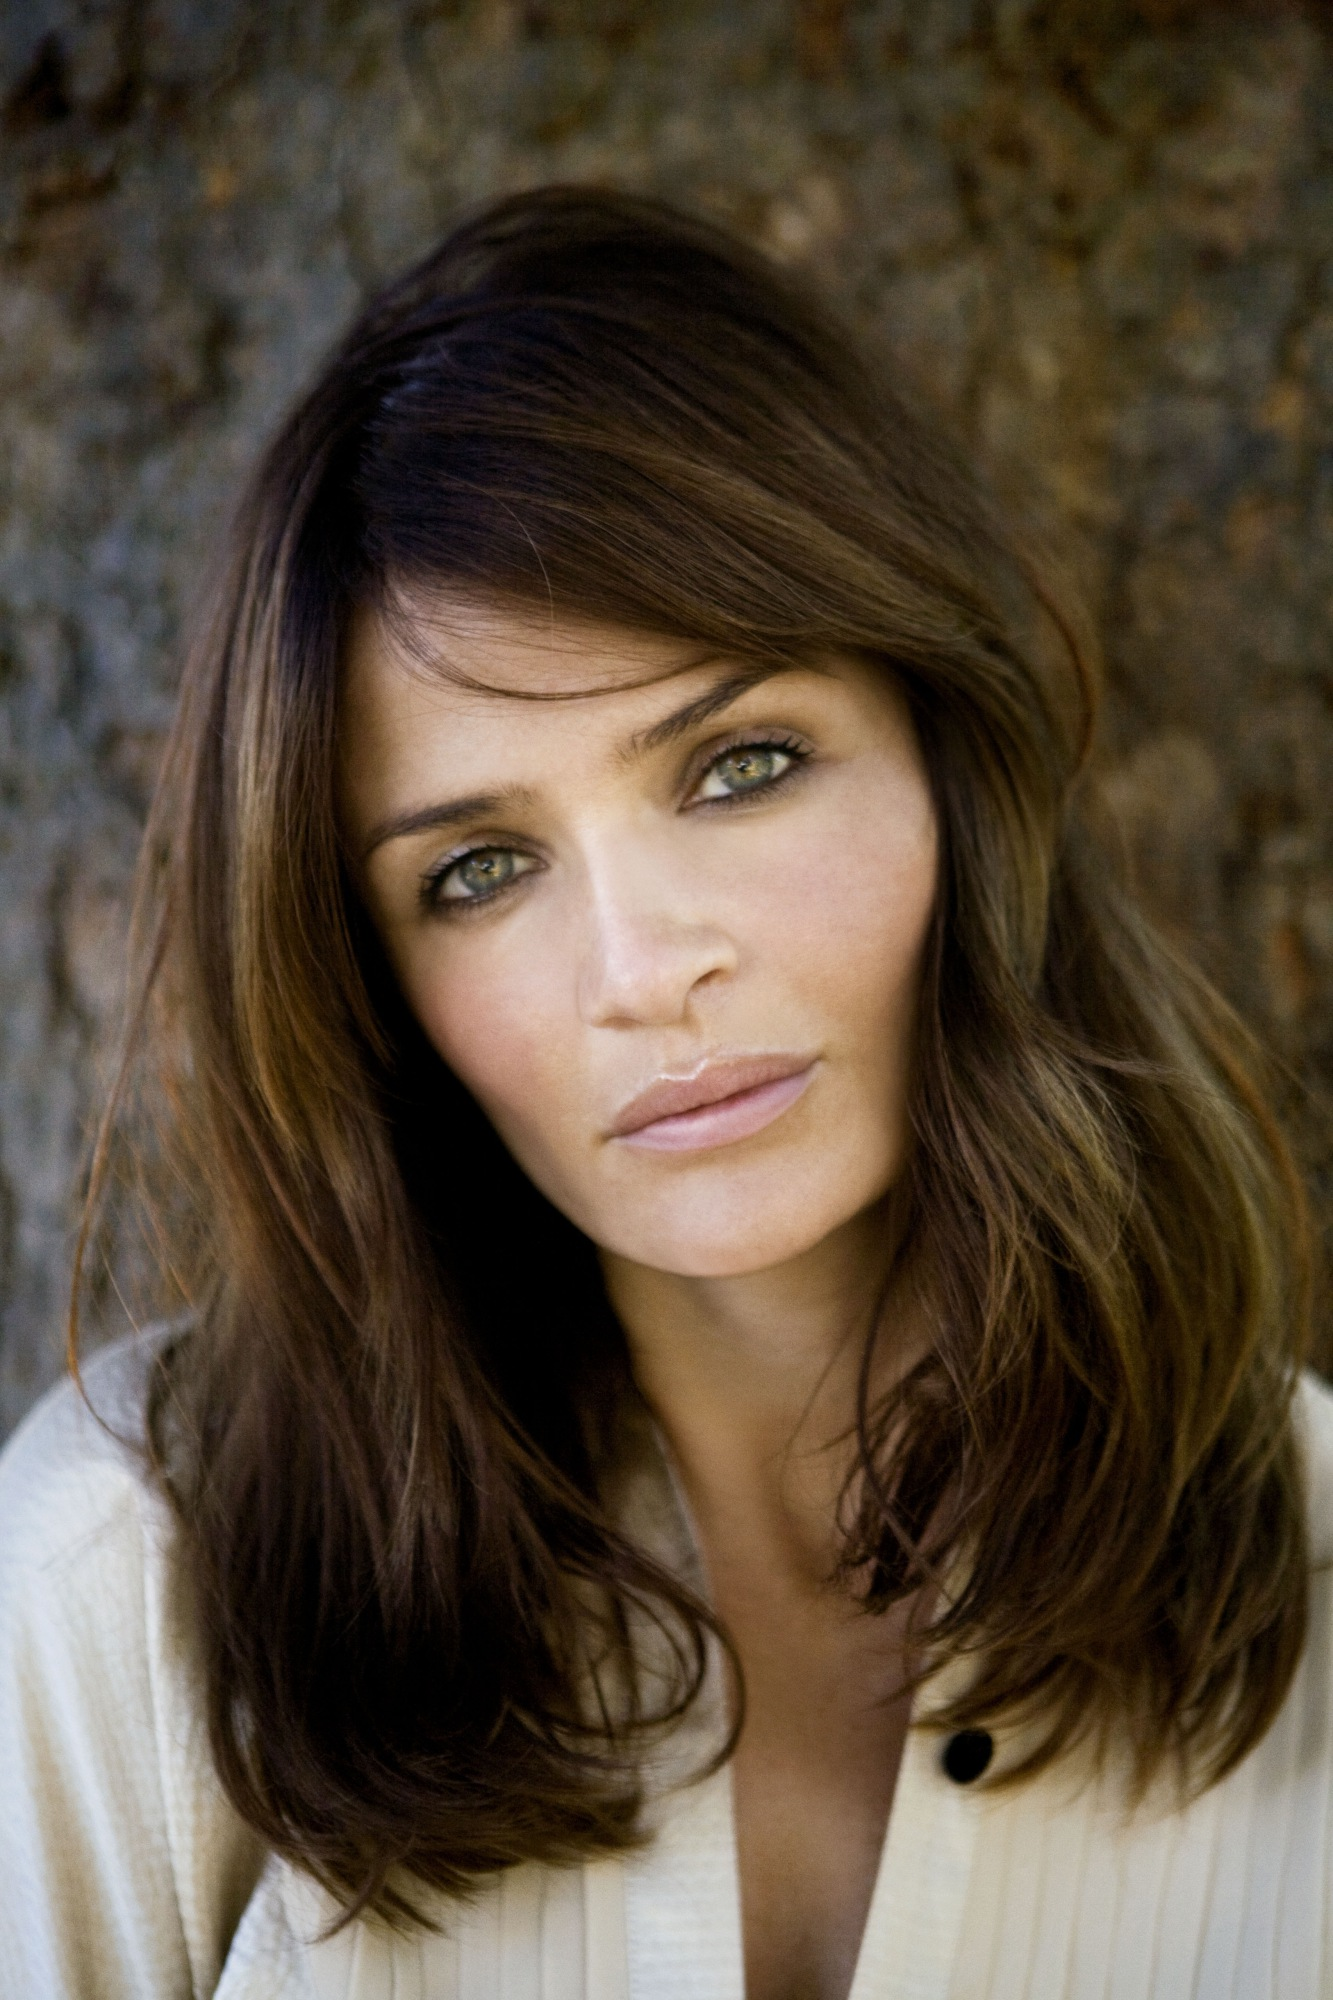 Helena Christensen Photo 285 Of 647 Pics Wallpaper